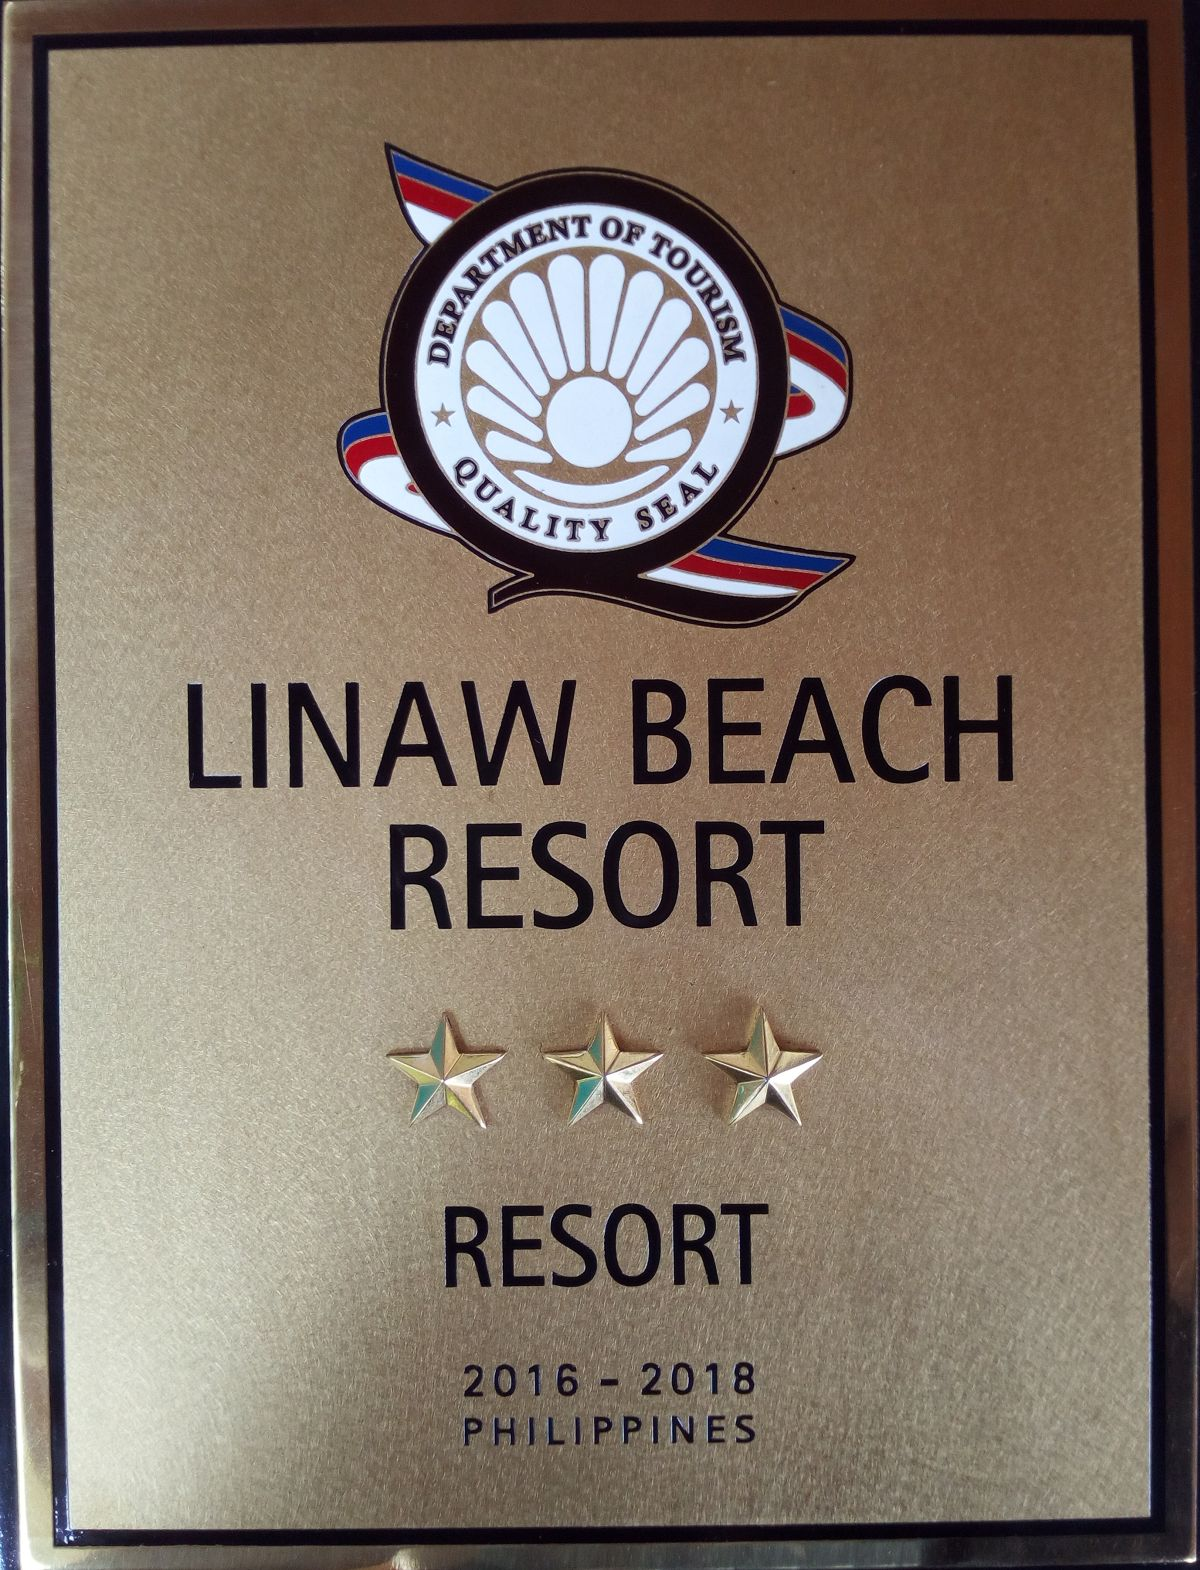 Linaw Beach Resort Reward